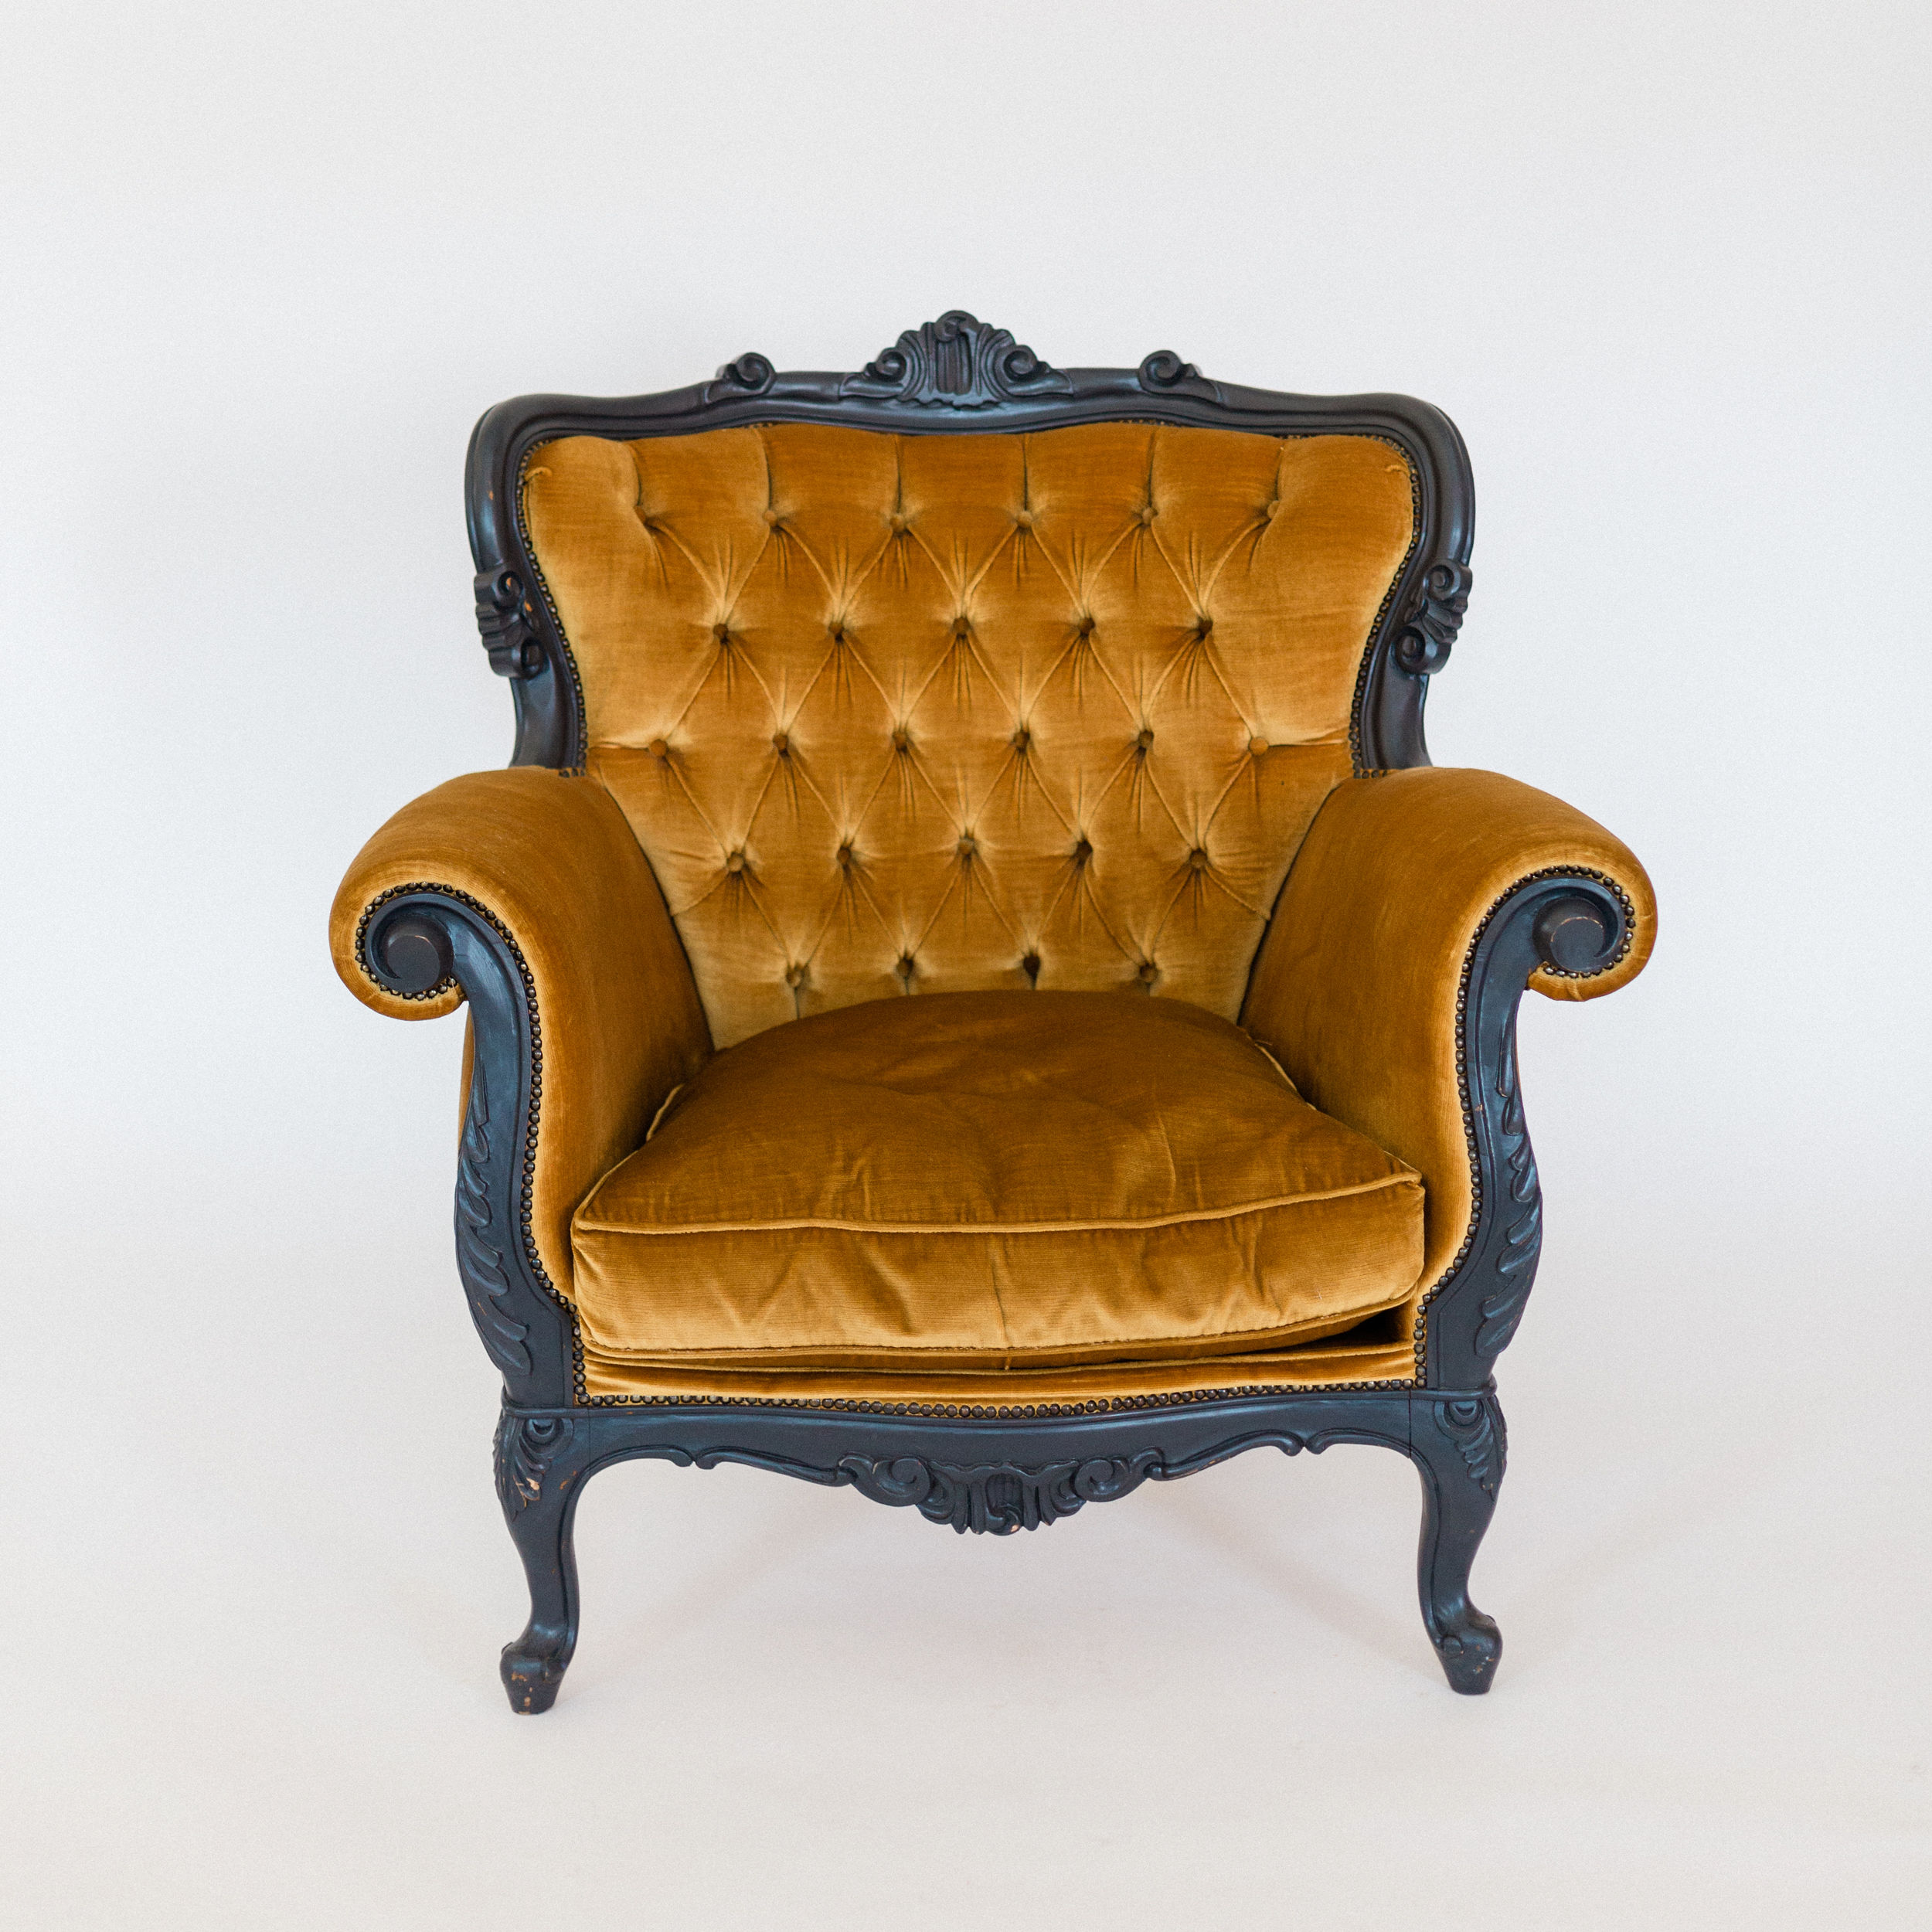 Image result for mustard chair